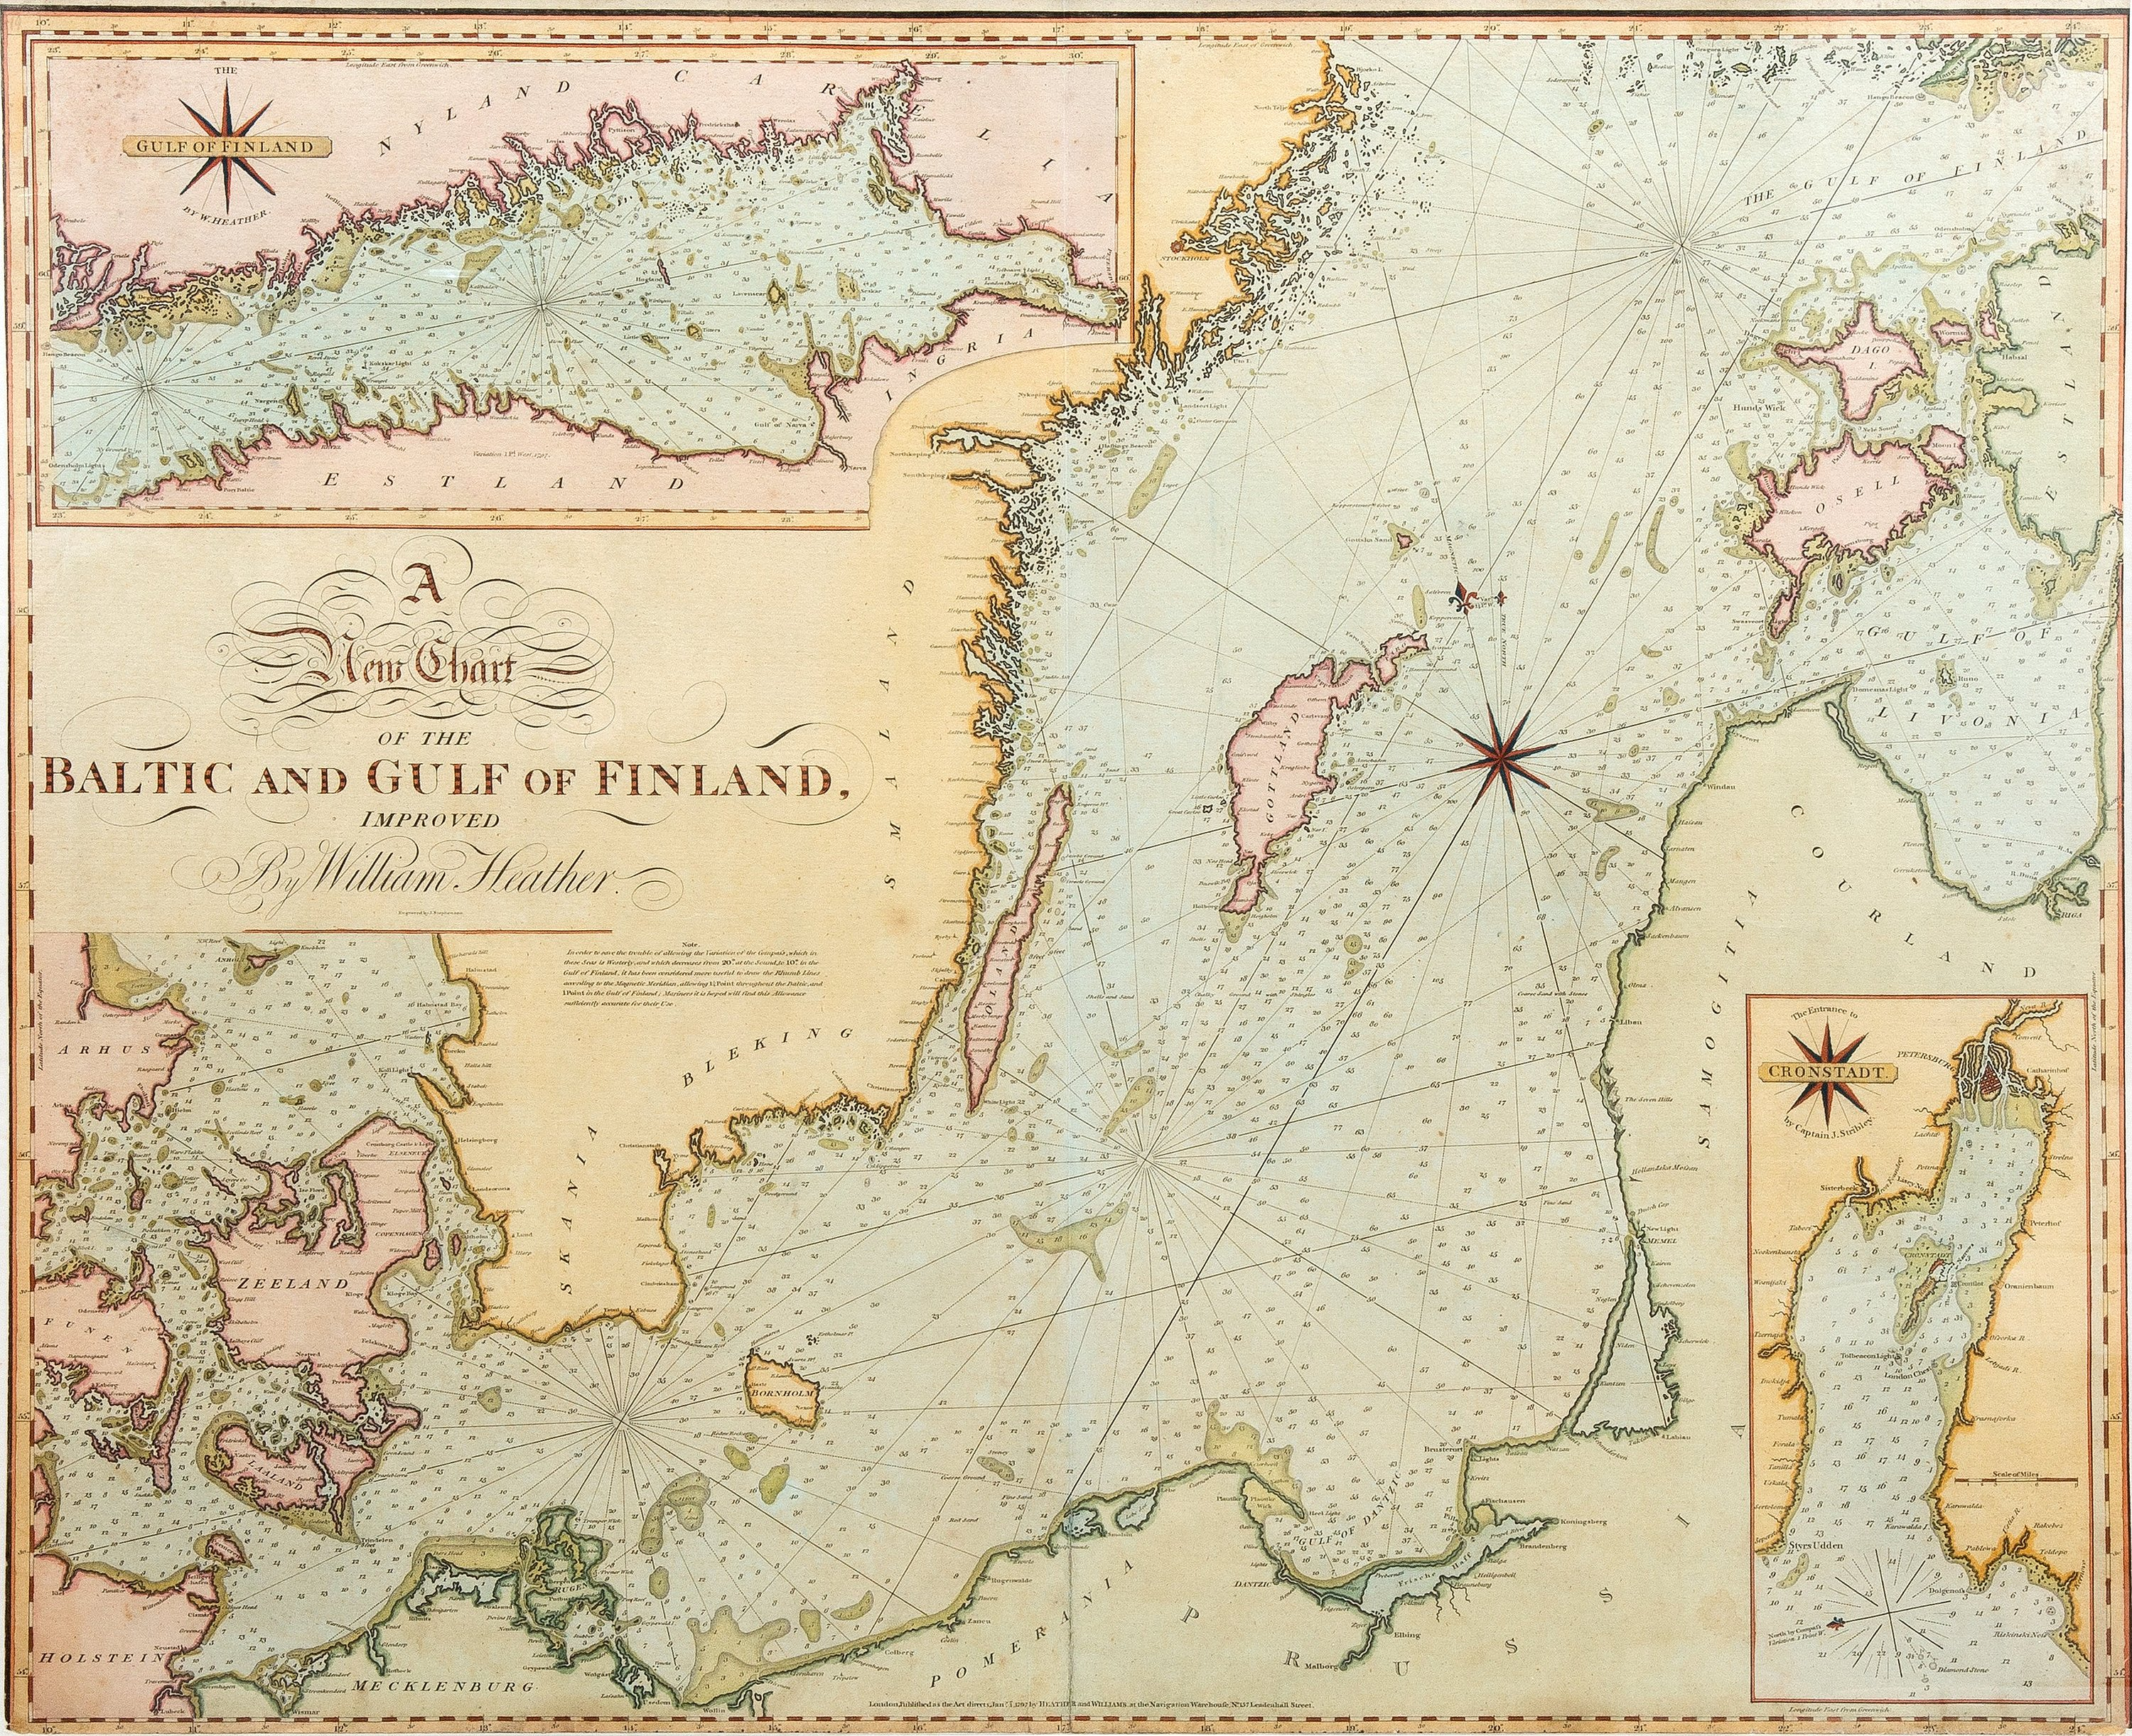 Kartta A New Chart Of The Baltic And Gulf Of Finland Improved By